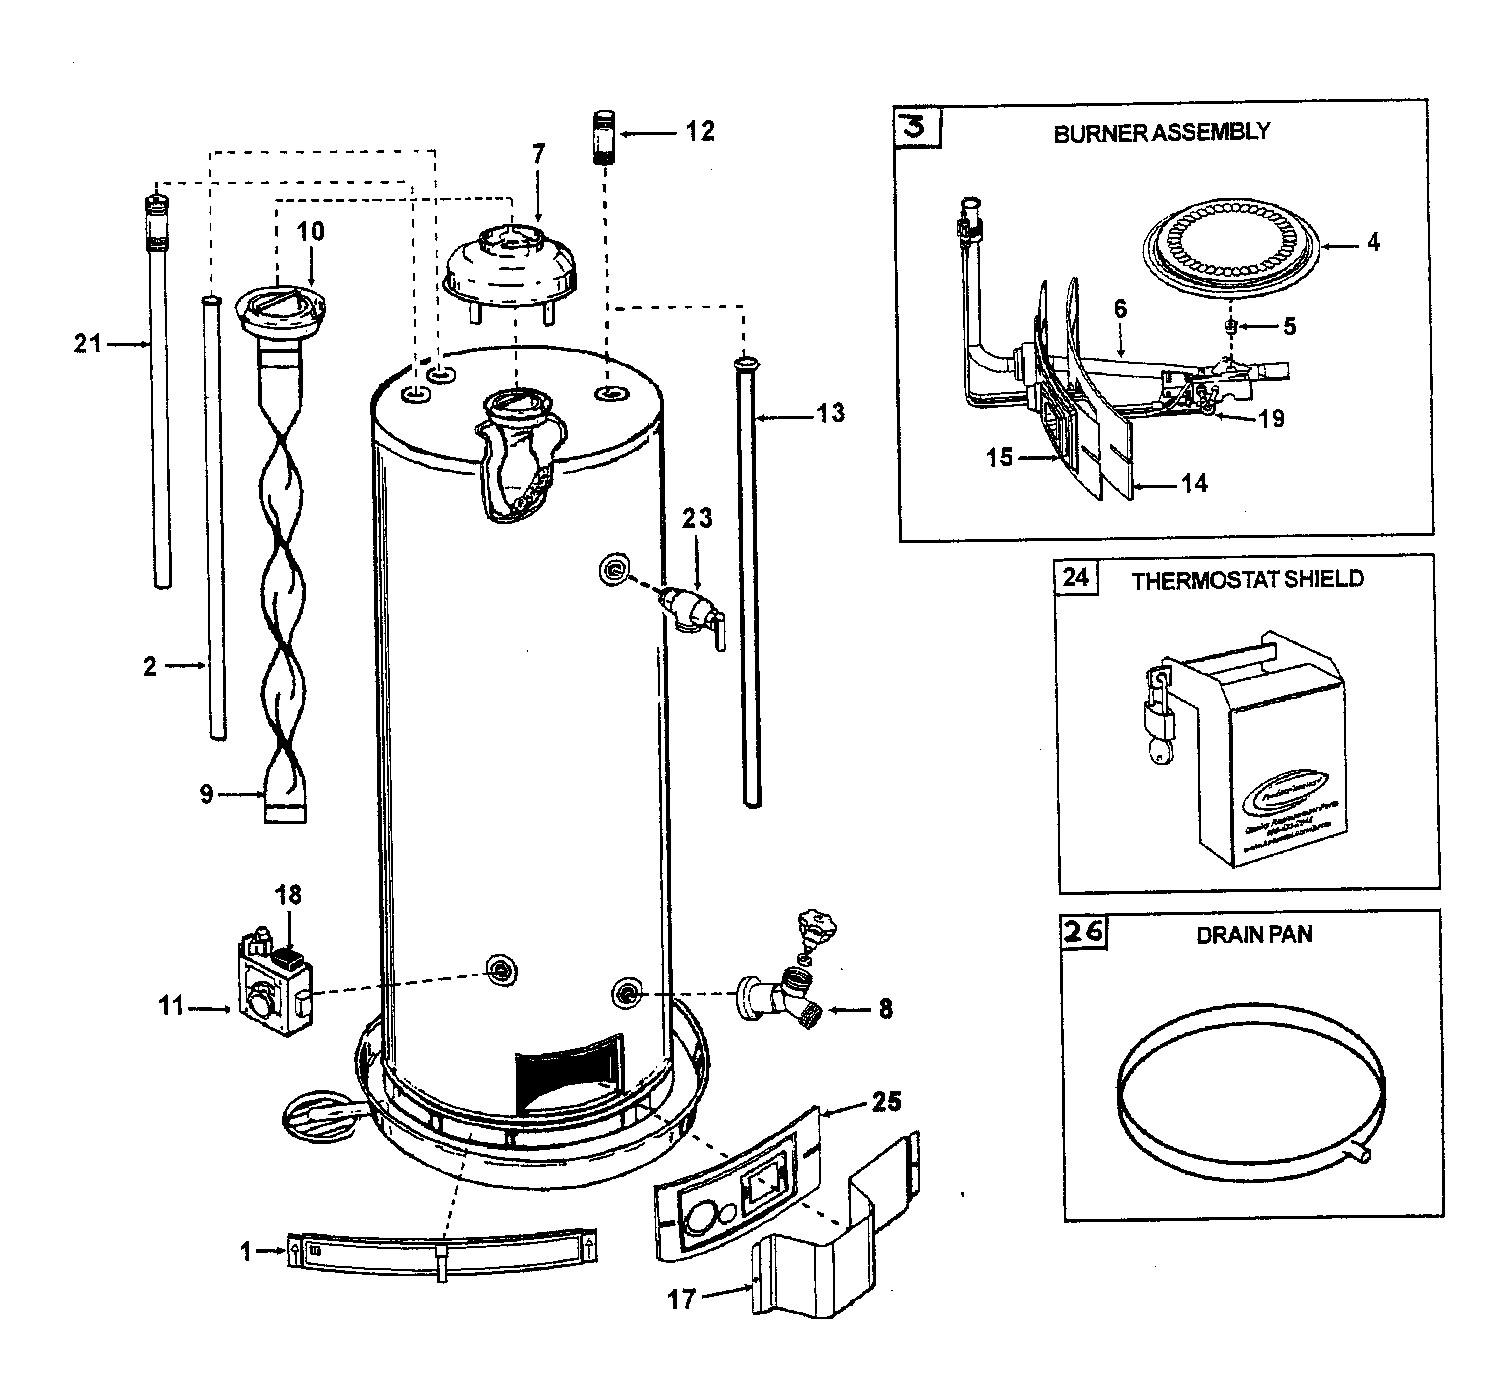 WATER HEATER Diagram & Parts List for Model GCVT50Q